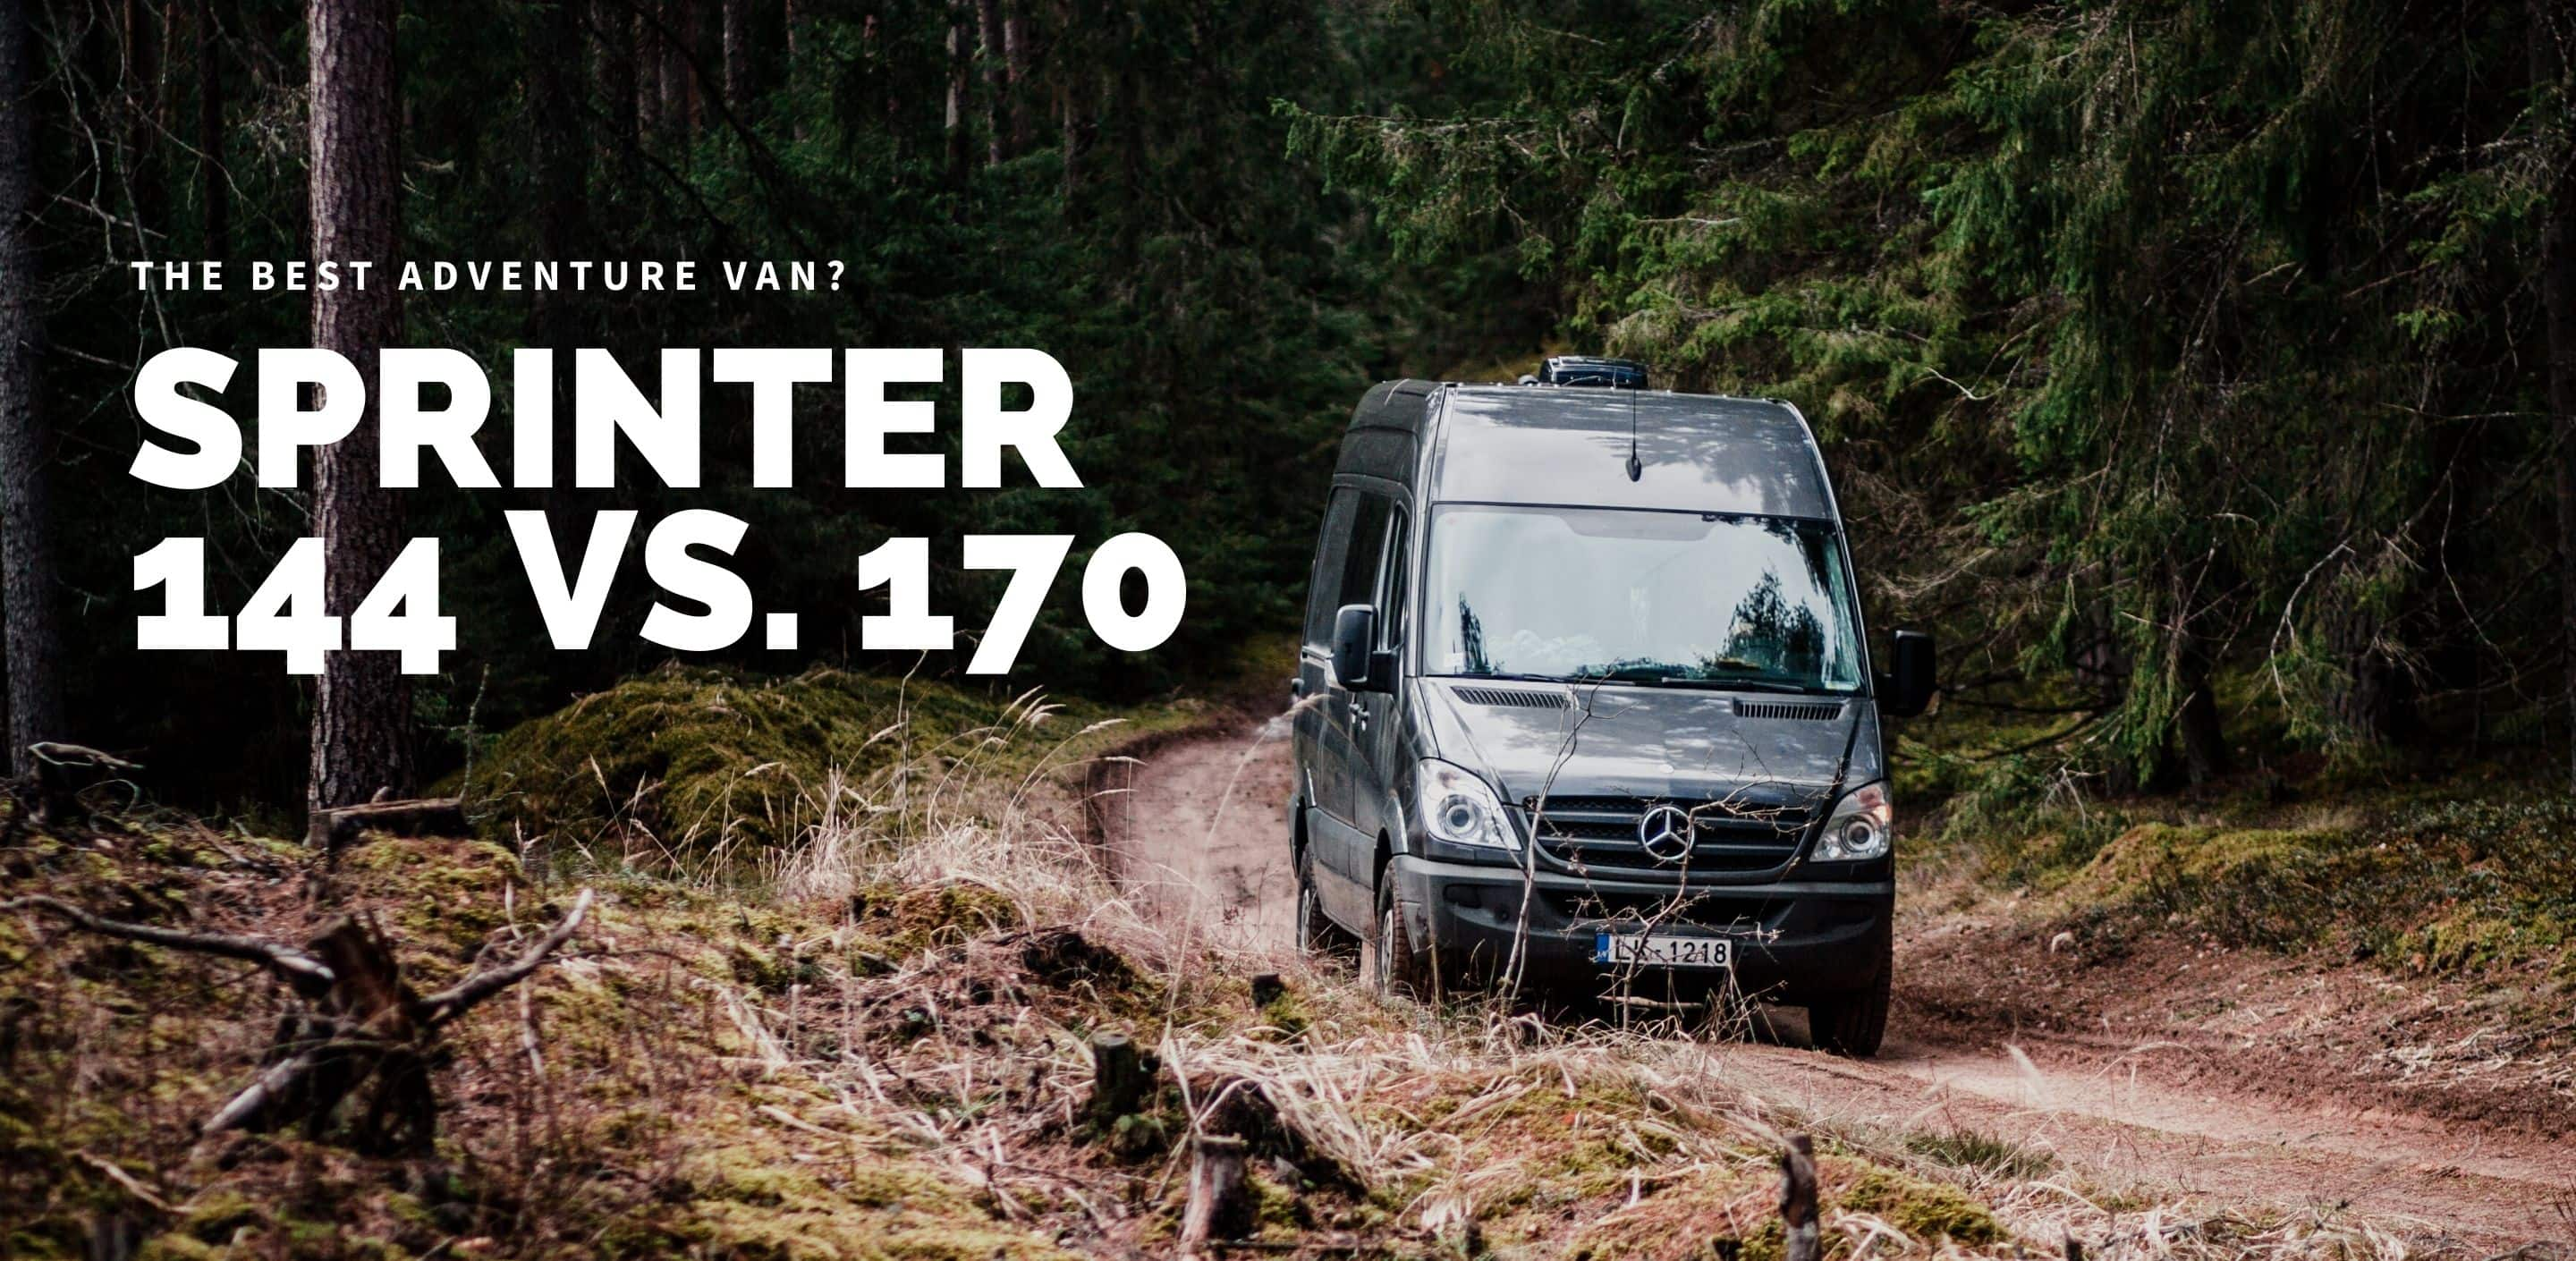 Sprinter 144 Vs 170 Which One Is The Better Adventure Van